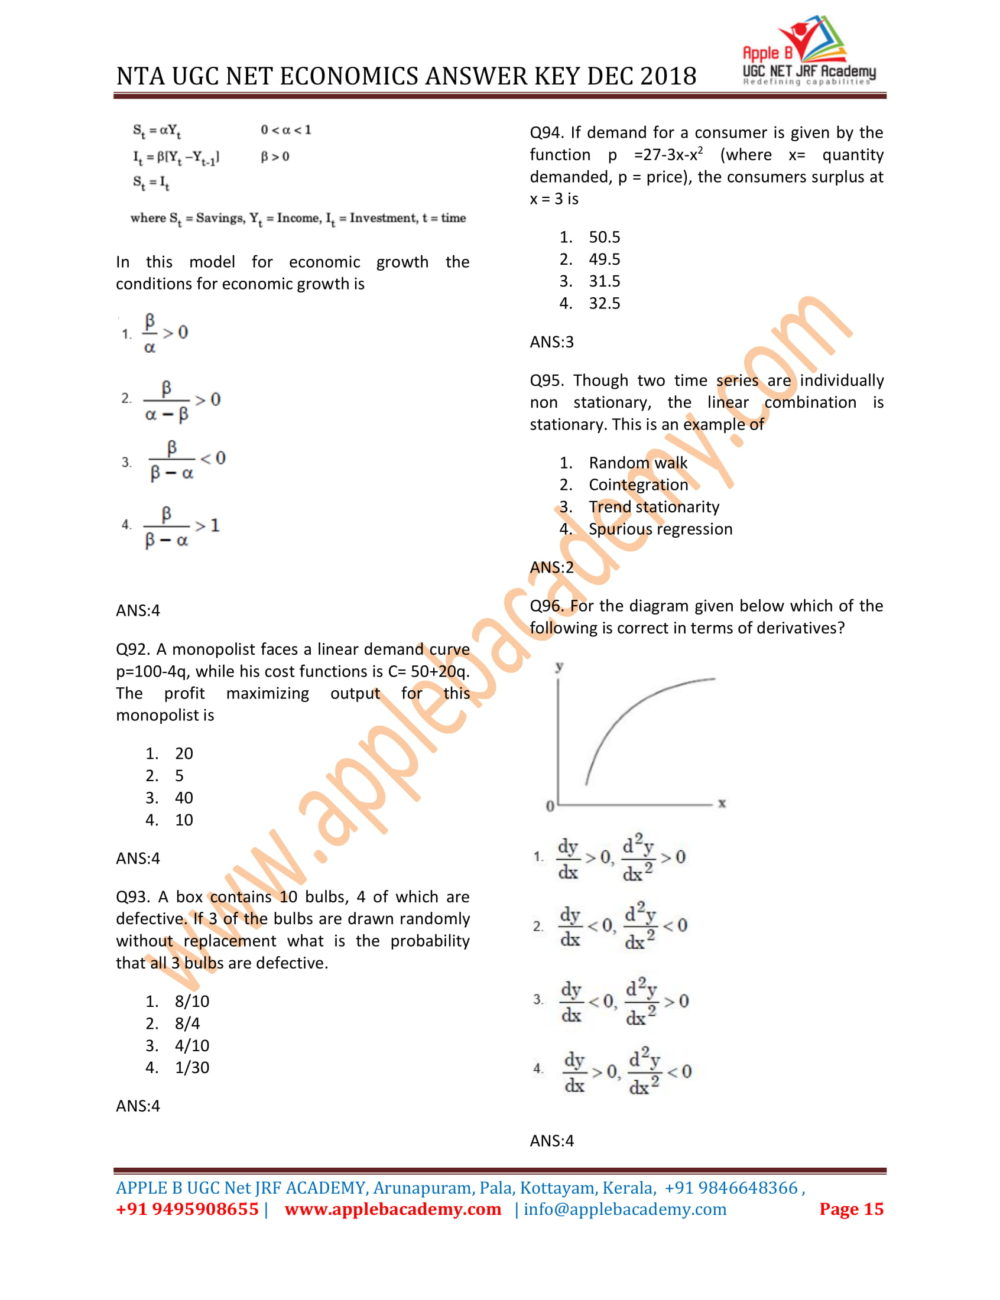 NTA UGC NET Economics Answer Key and Question Paper December